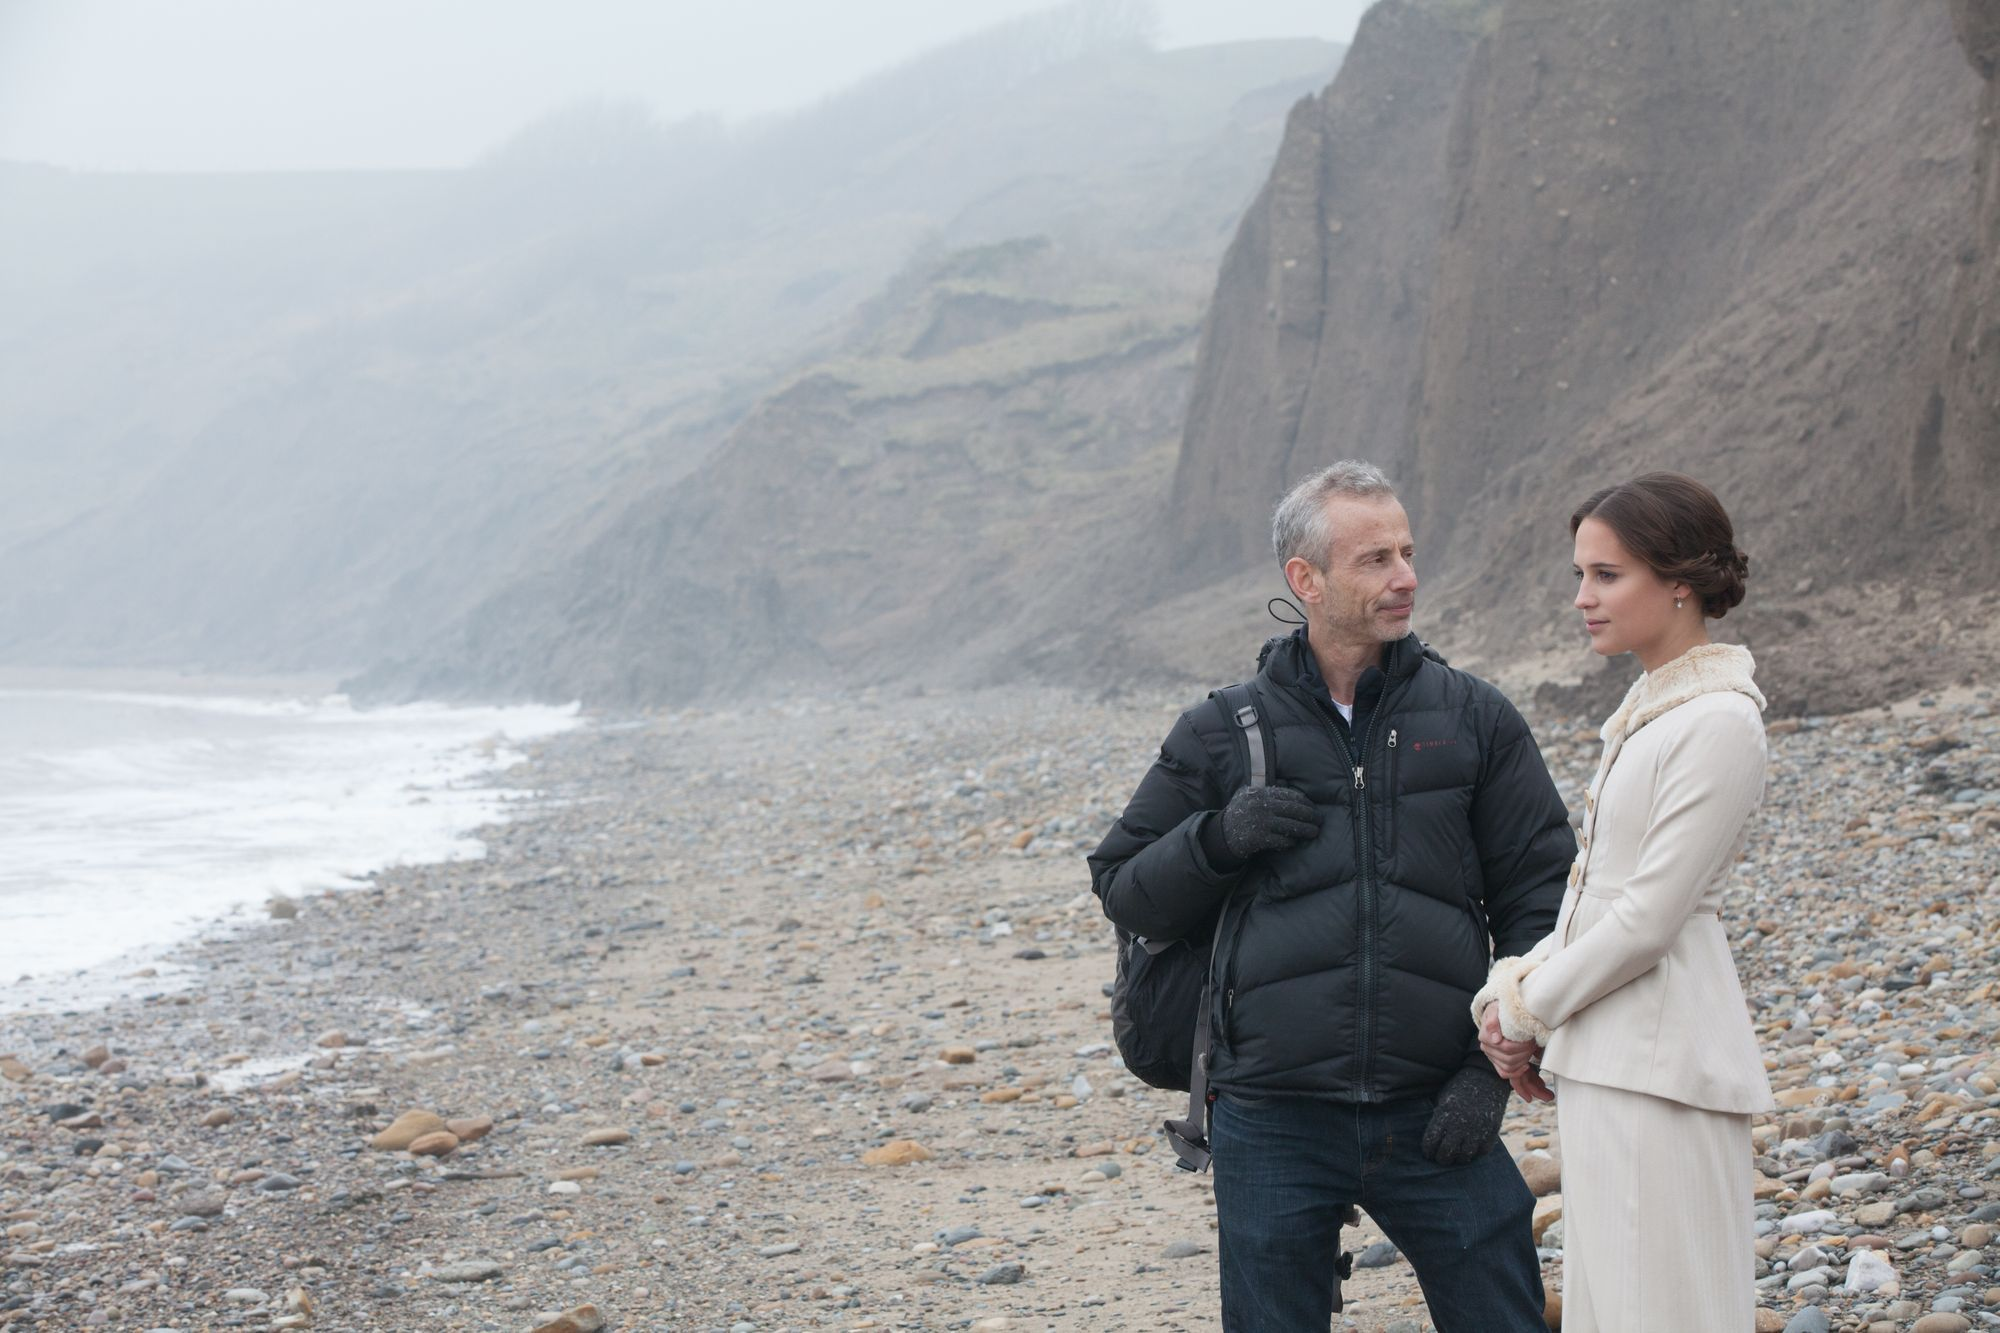 Film director James Kent on the set Testament of Youth movie backstage images with Alicia Vikander